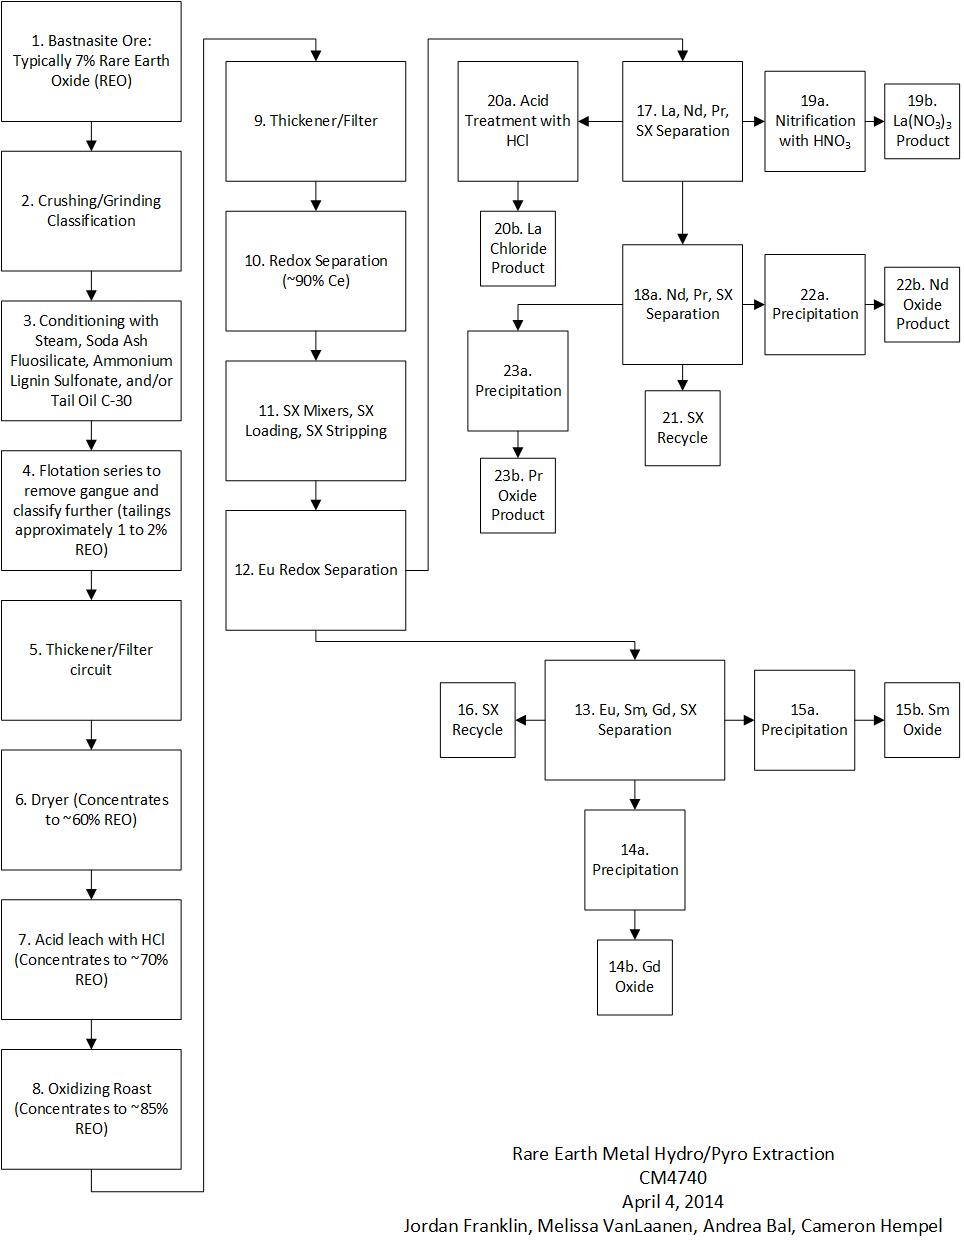 Support Process Flow Chart: Pyrometallury rare earth metal extraction from bastnastie ore ,Chart